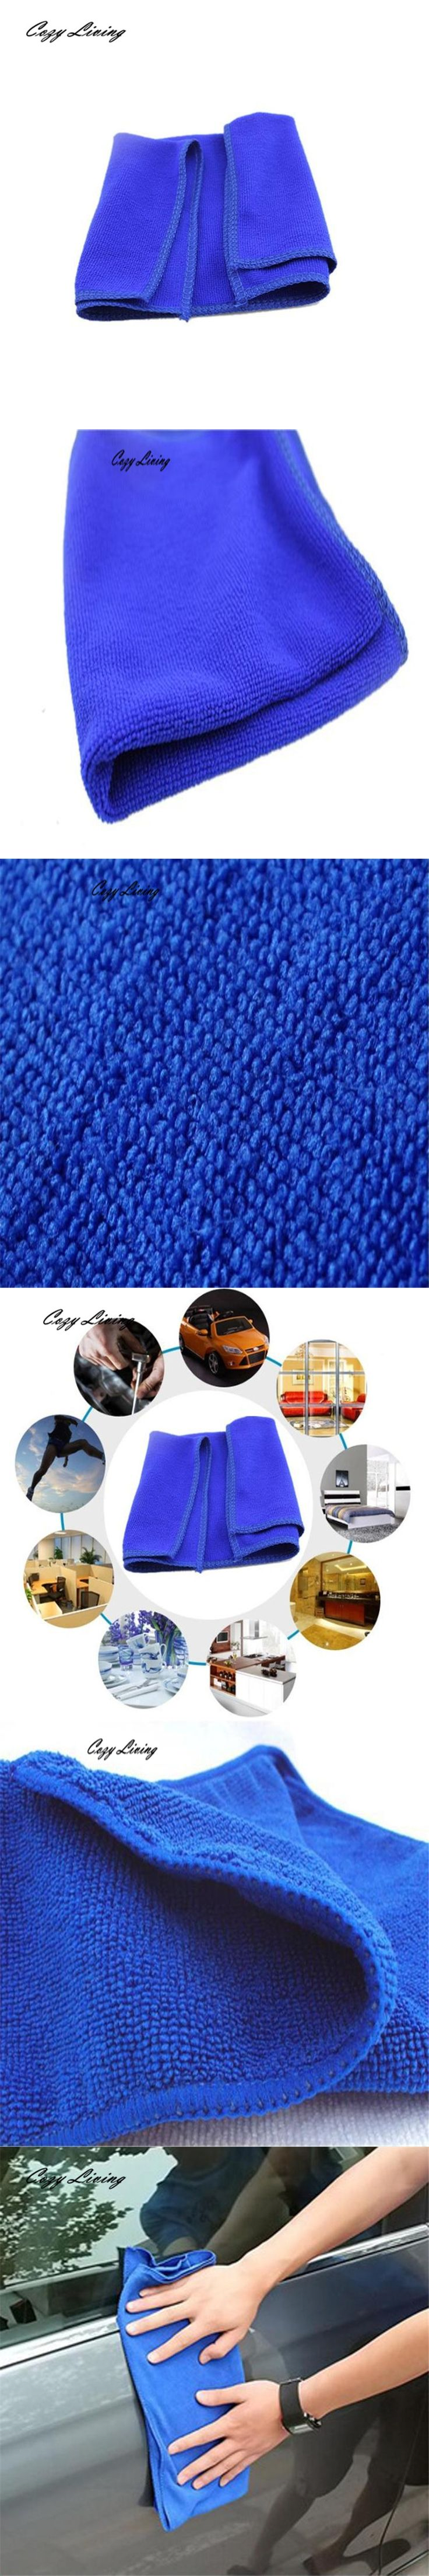 Microfiber Cleaning Cloth 2/5/10 PCS Soft Towel Kitchen Wash Auto Car Home Cleaning Wash Clean Cloth Blue Wholesale JA4